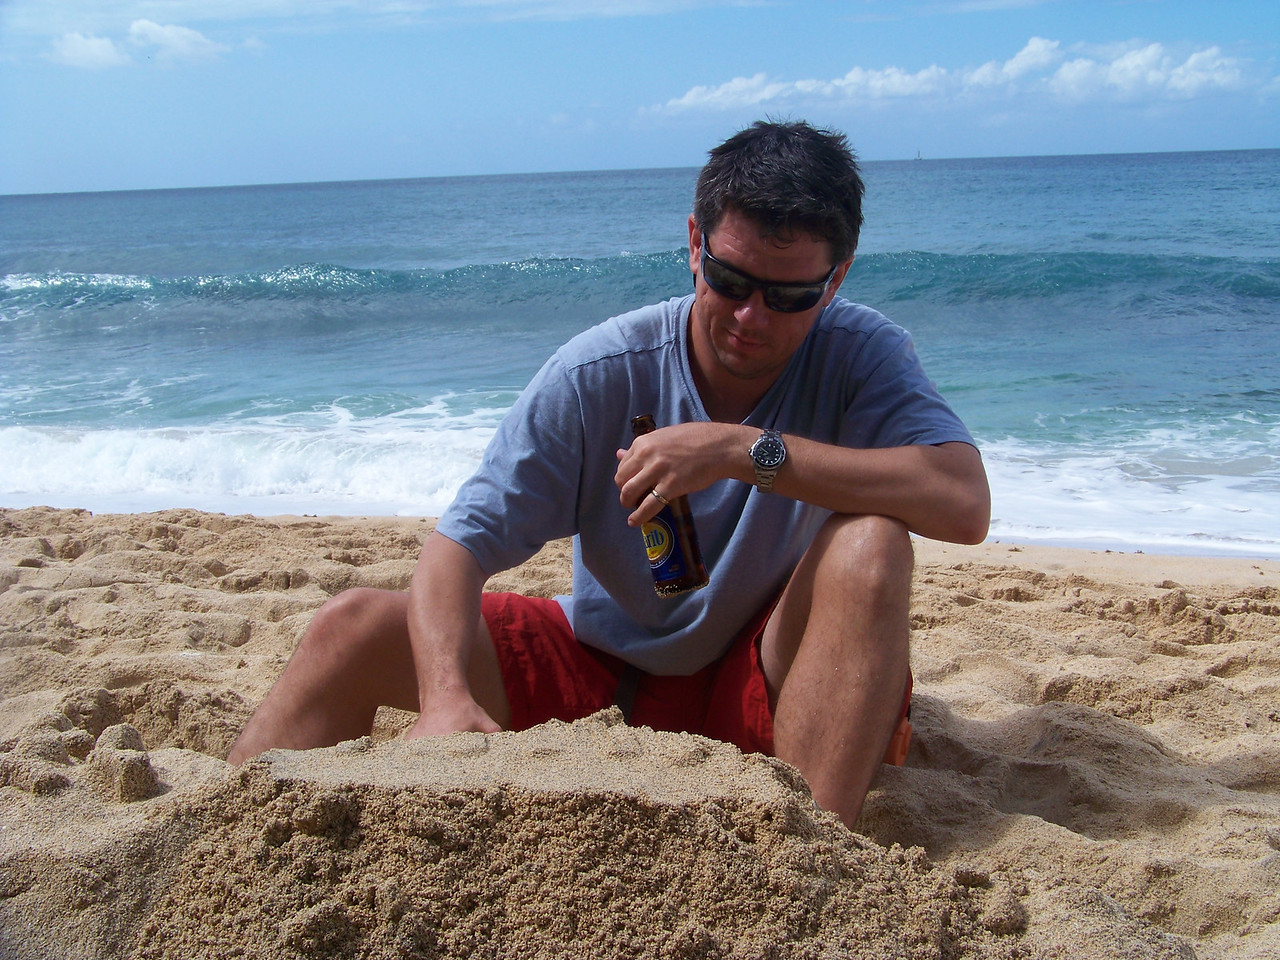 Daddy making a sand castle